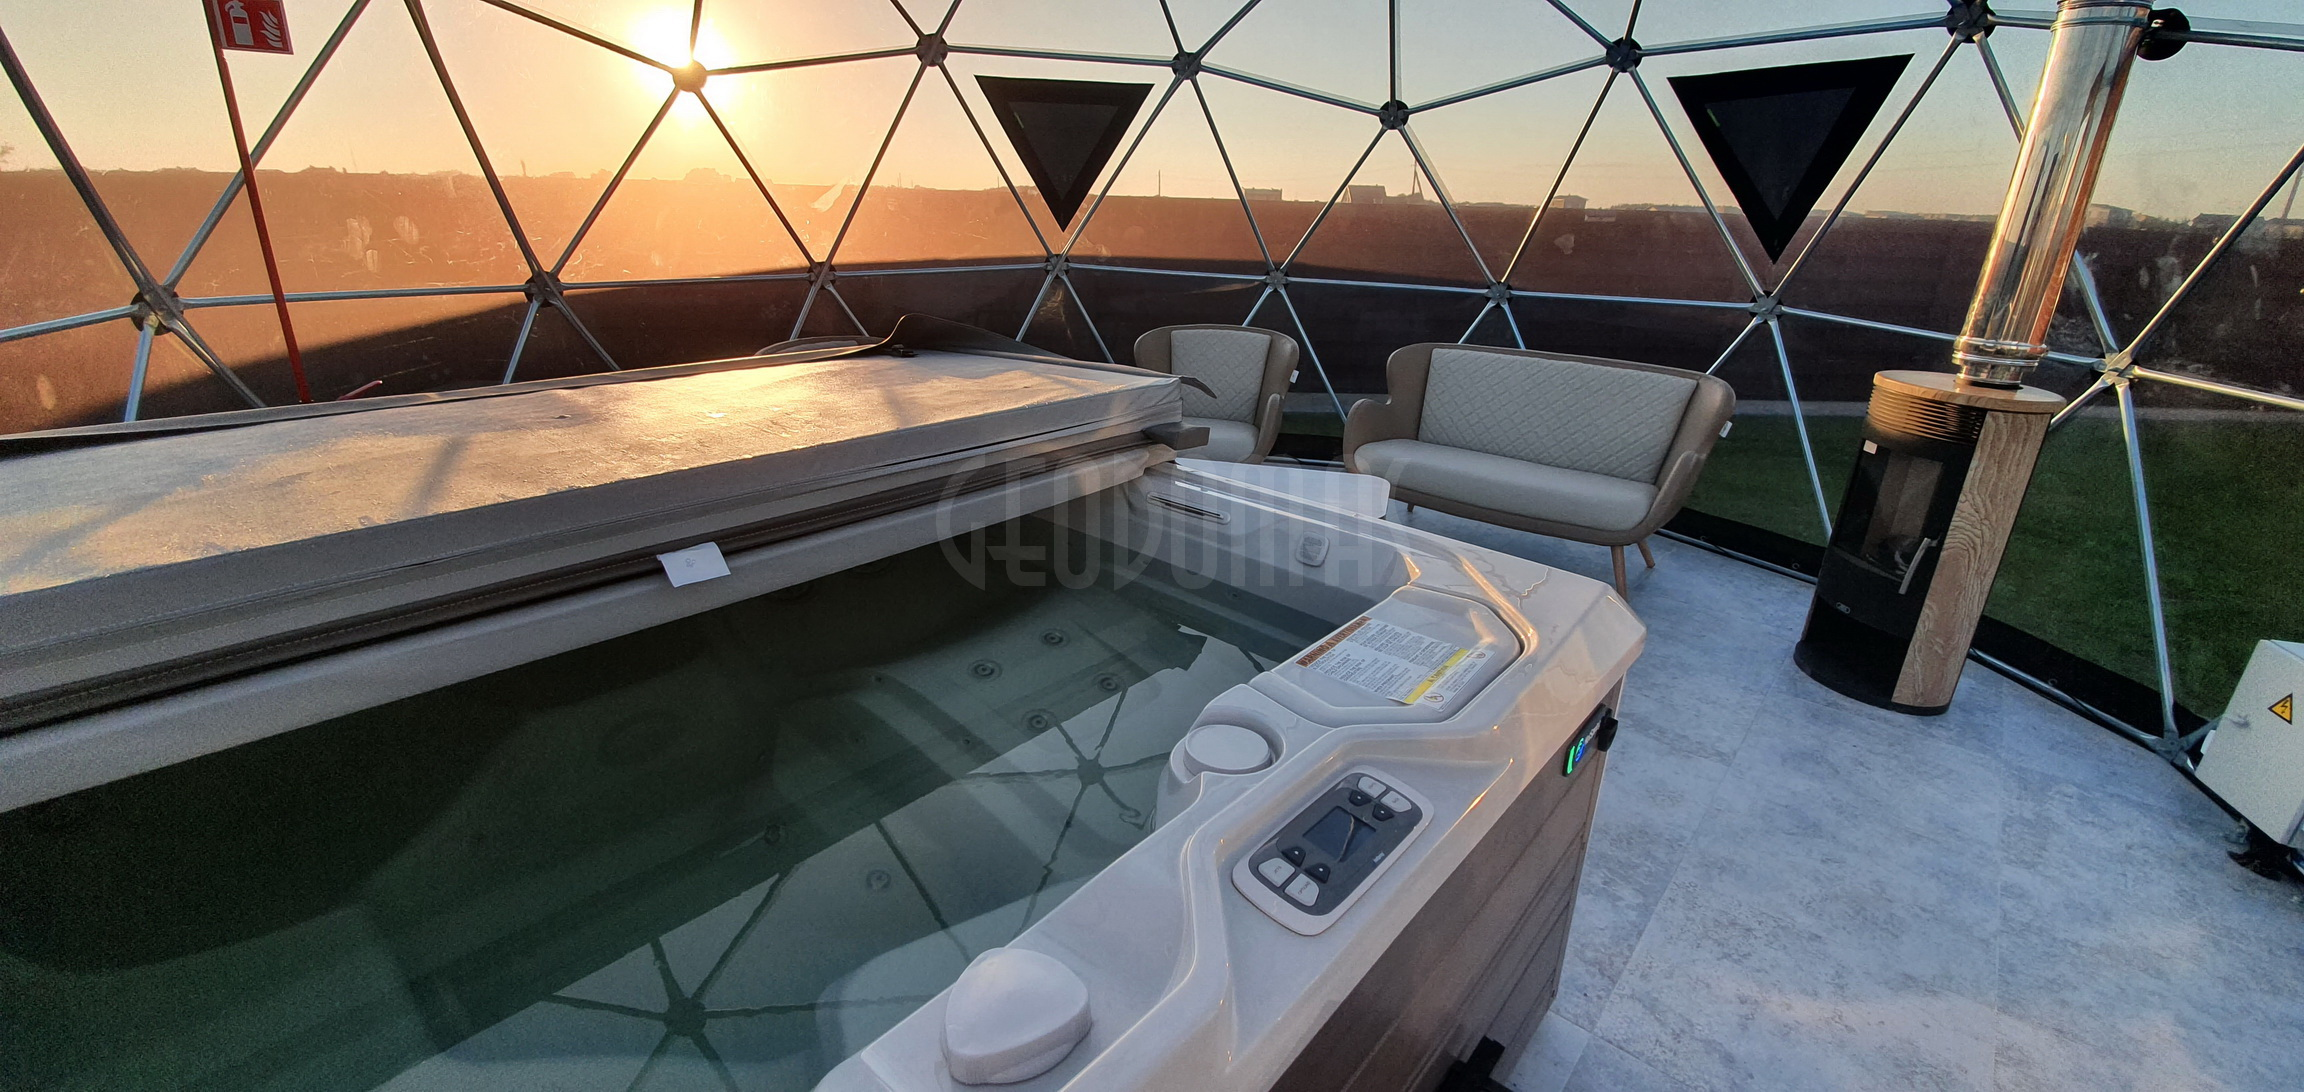 spa_dome_geodomas_geodesic_3